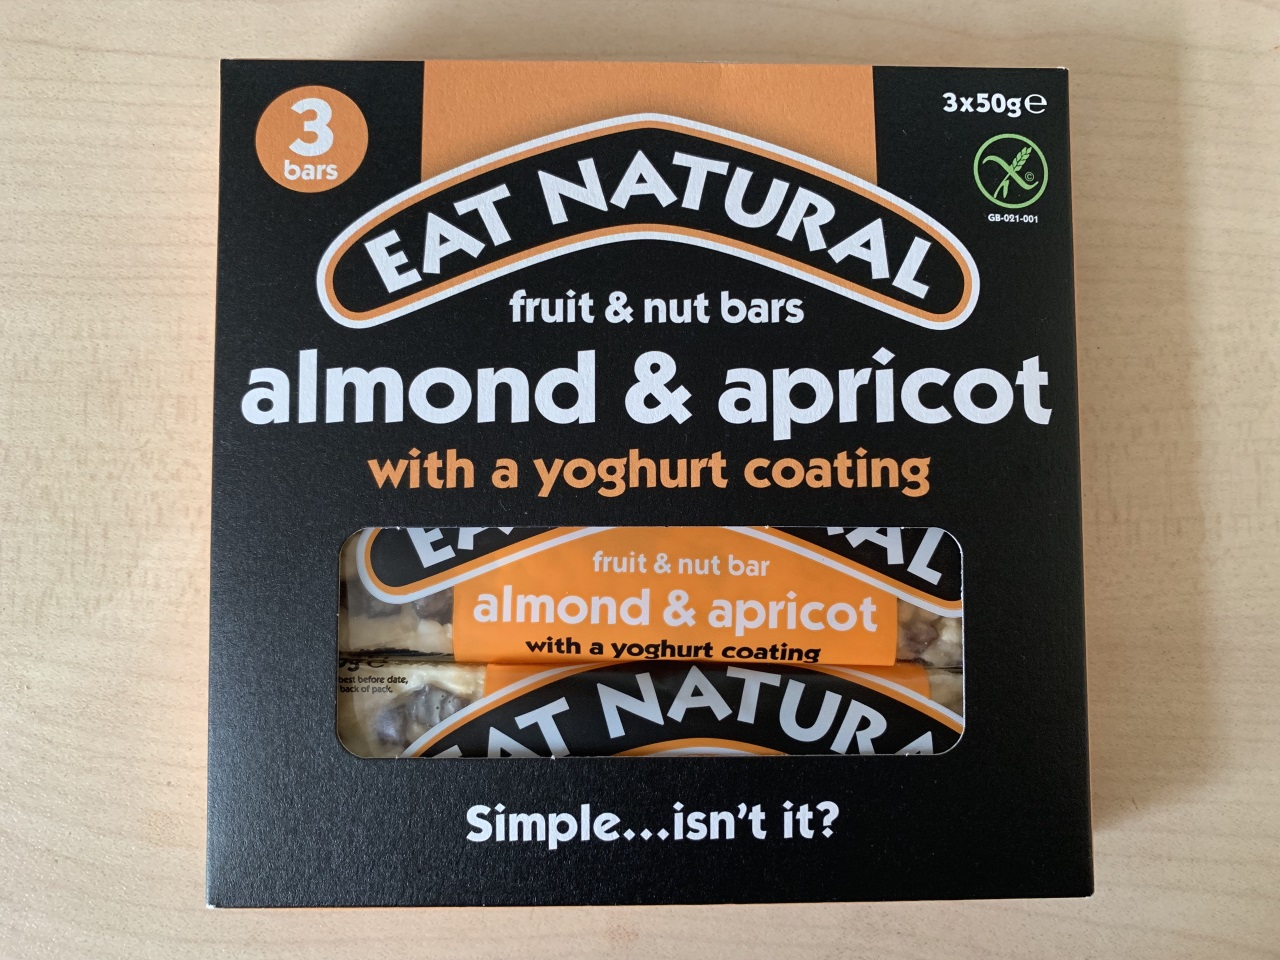 EAT NATURAL fruit & nut bars almond & apricot